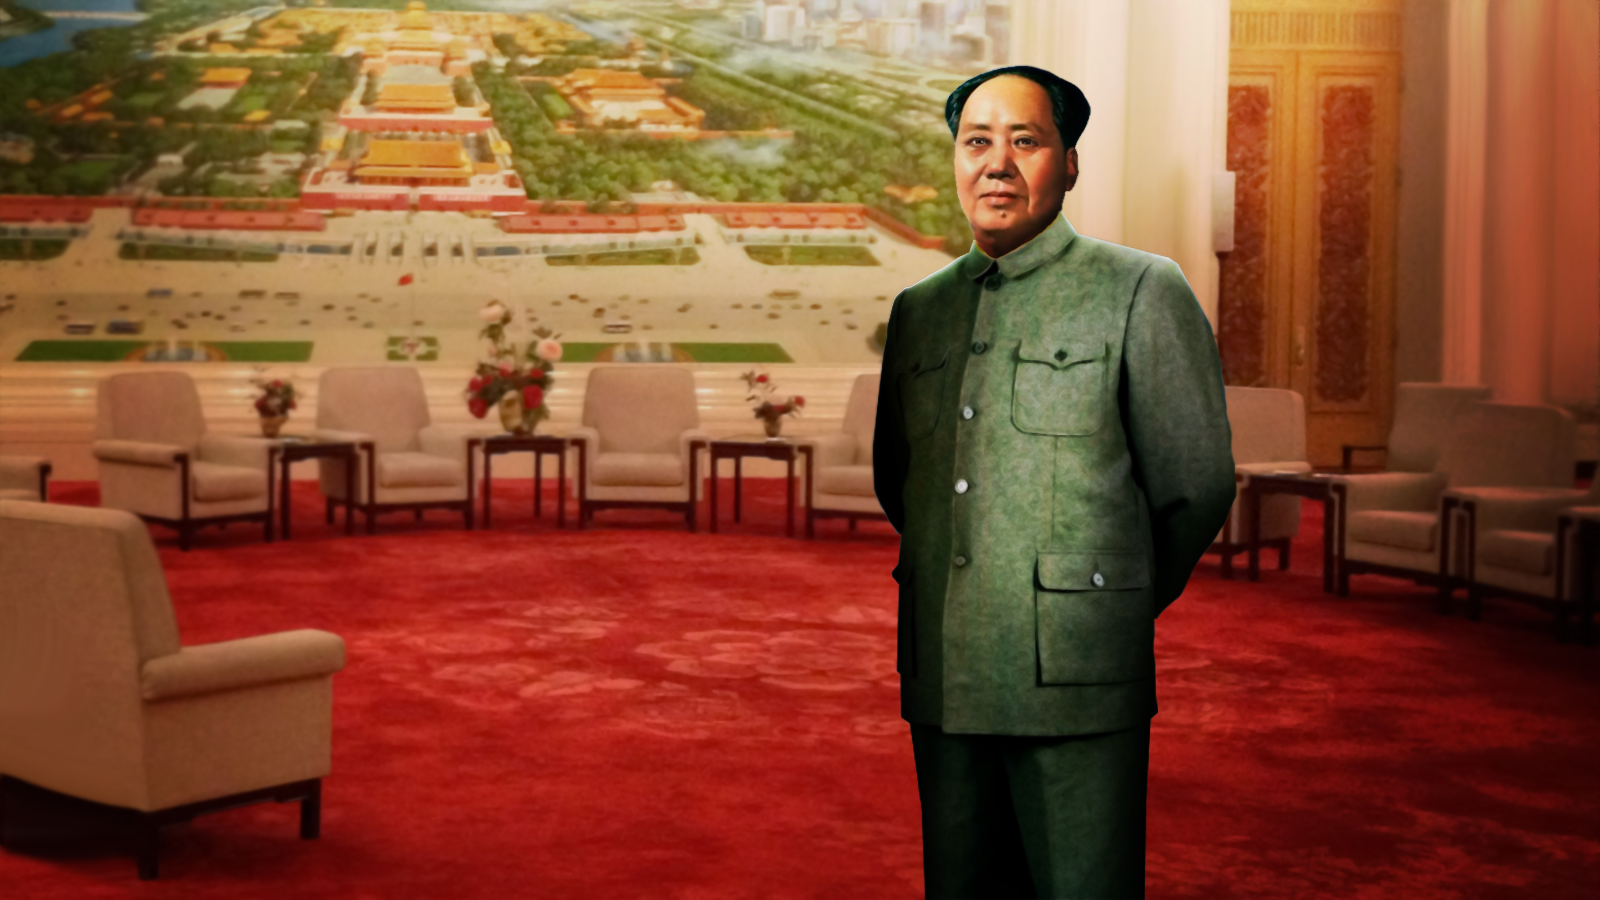 mao zedong civilization v customisation wikia fandom mao scene